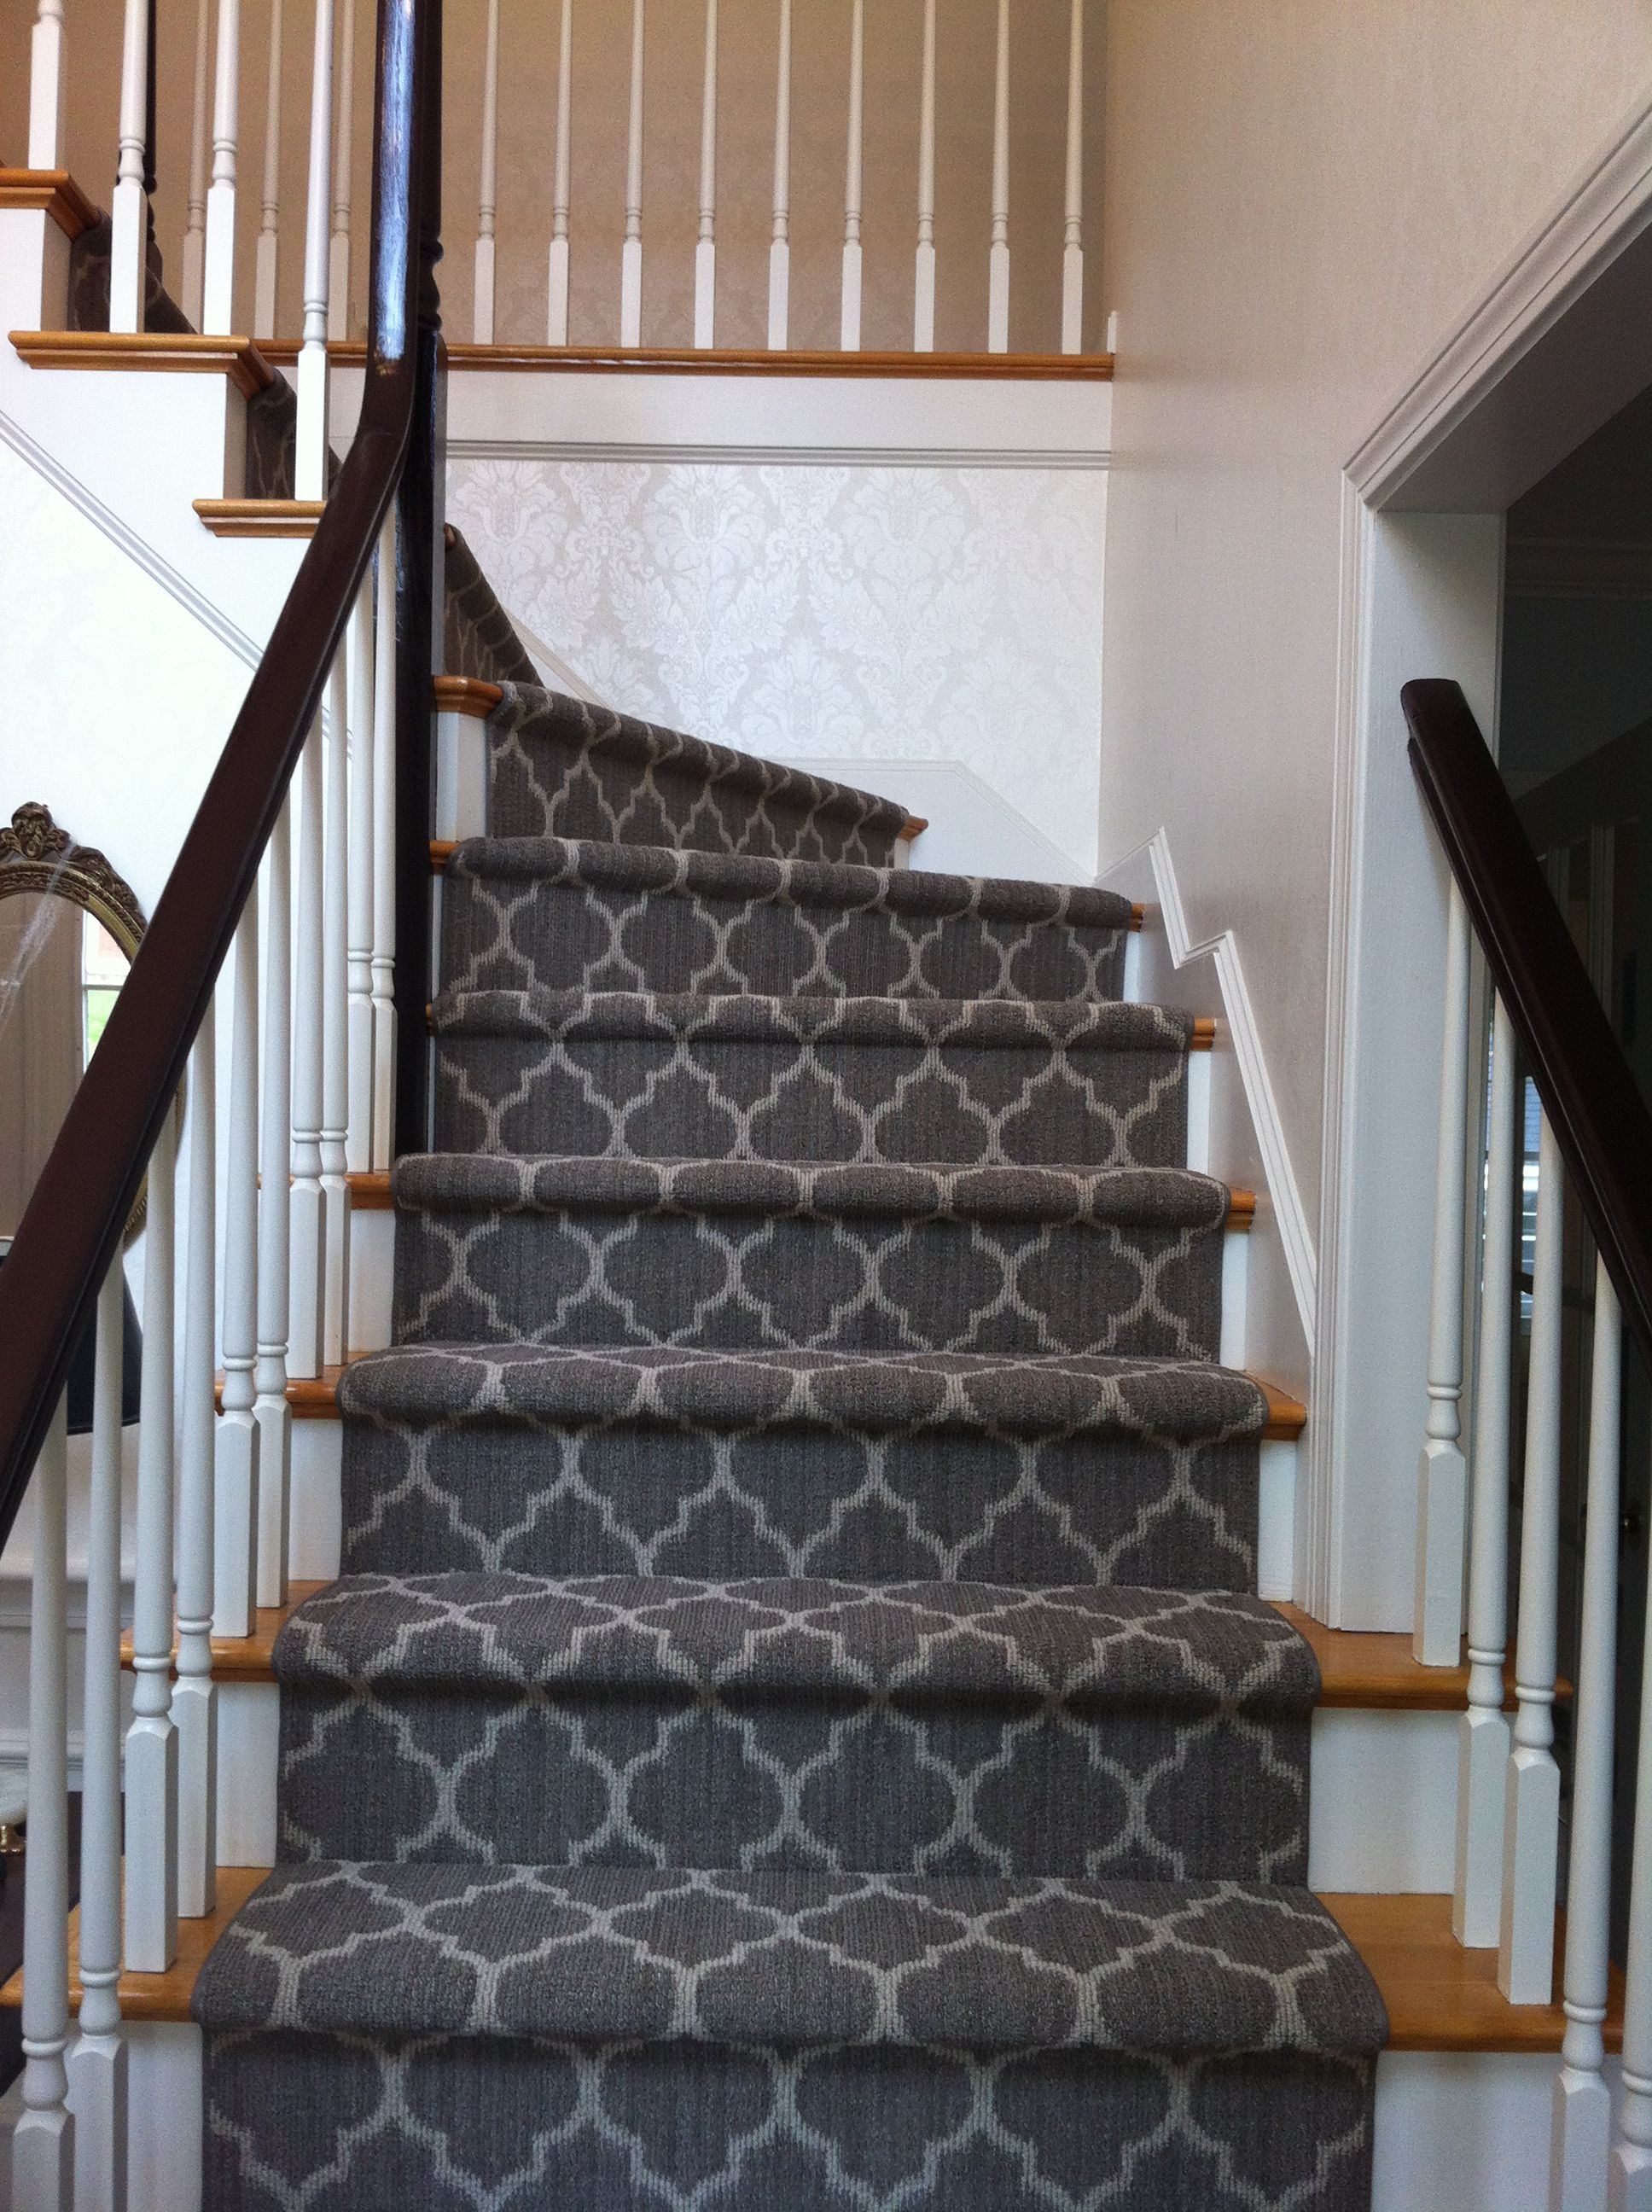 Tuftex Carpets of California style Taza on stairs   stairs     Tuftex Carpets of California style Taza on stairs